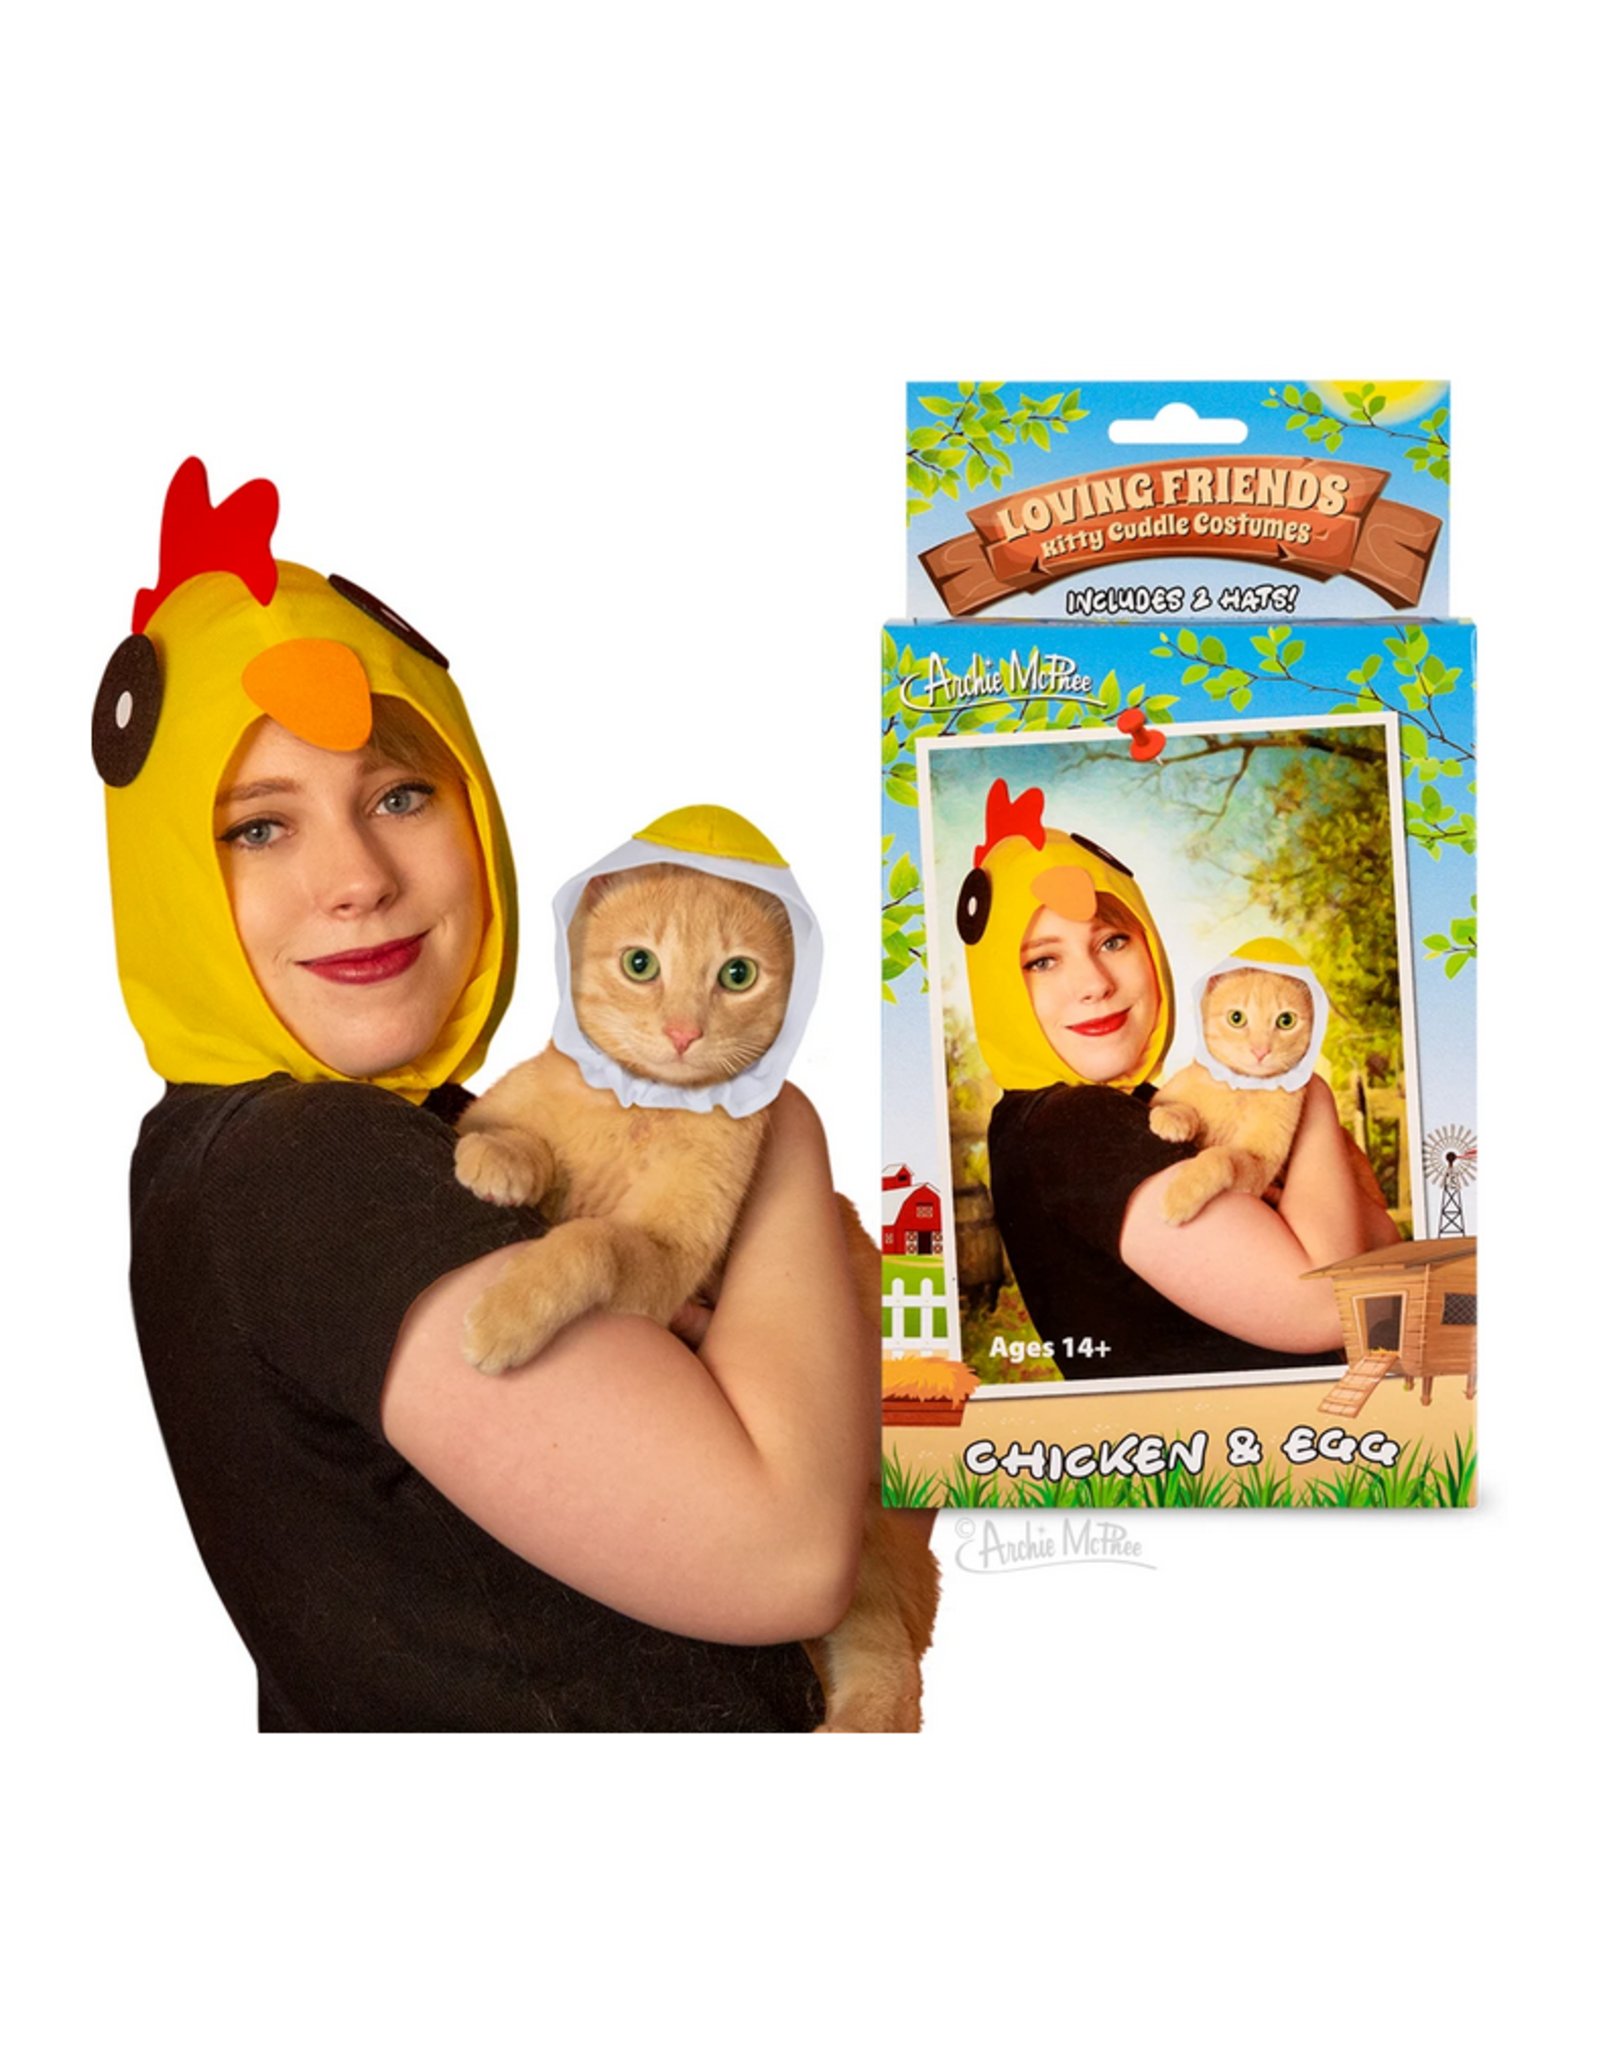 Kitty Cuddle Costume : Chicken and Egg